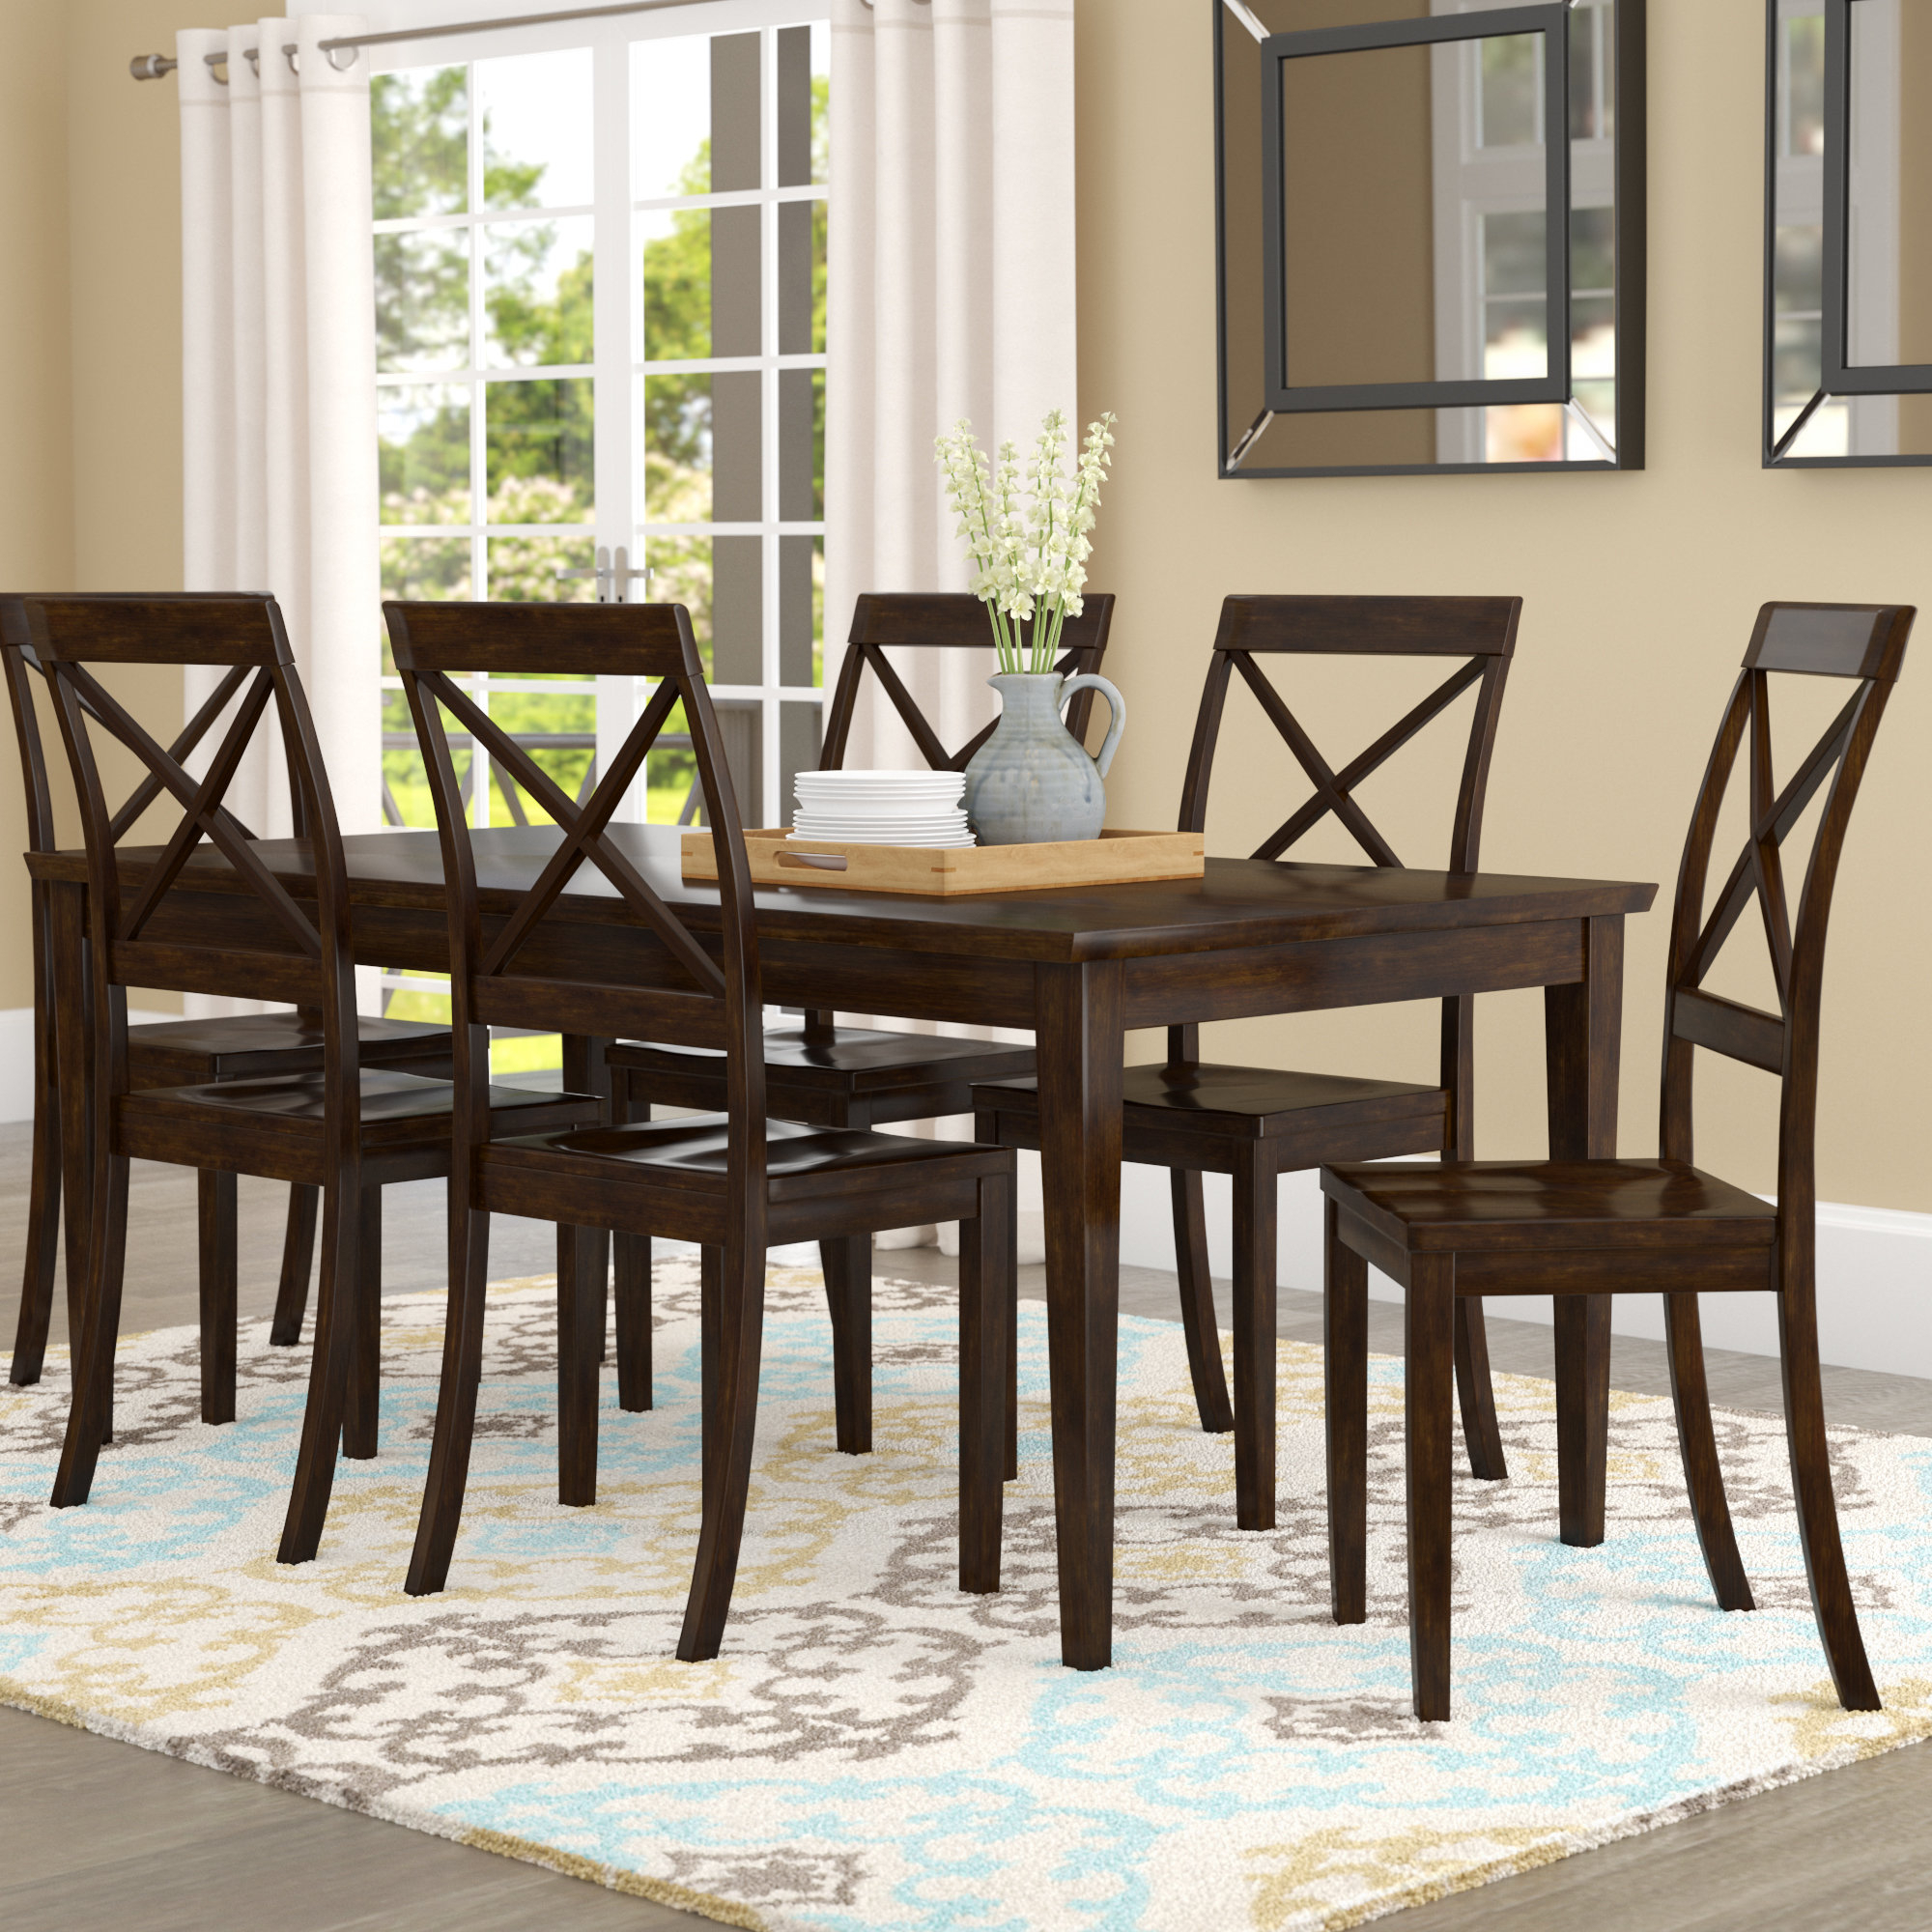 Wayfair With Smyrna 3 Piece Dining Sets (View 4 of 25)